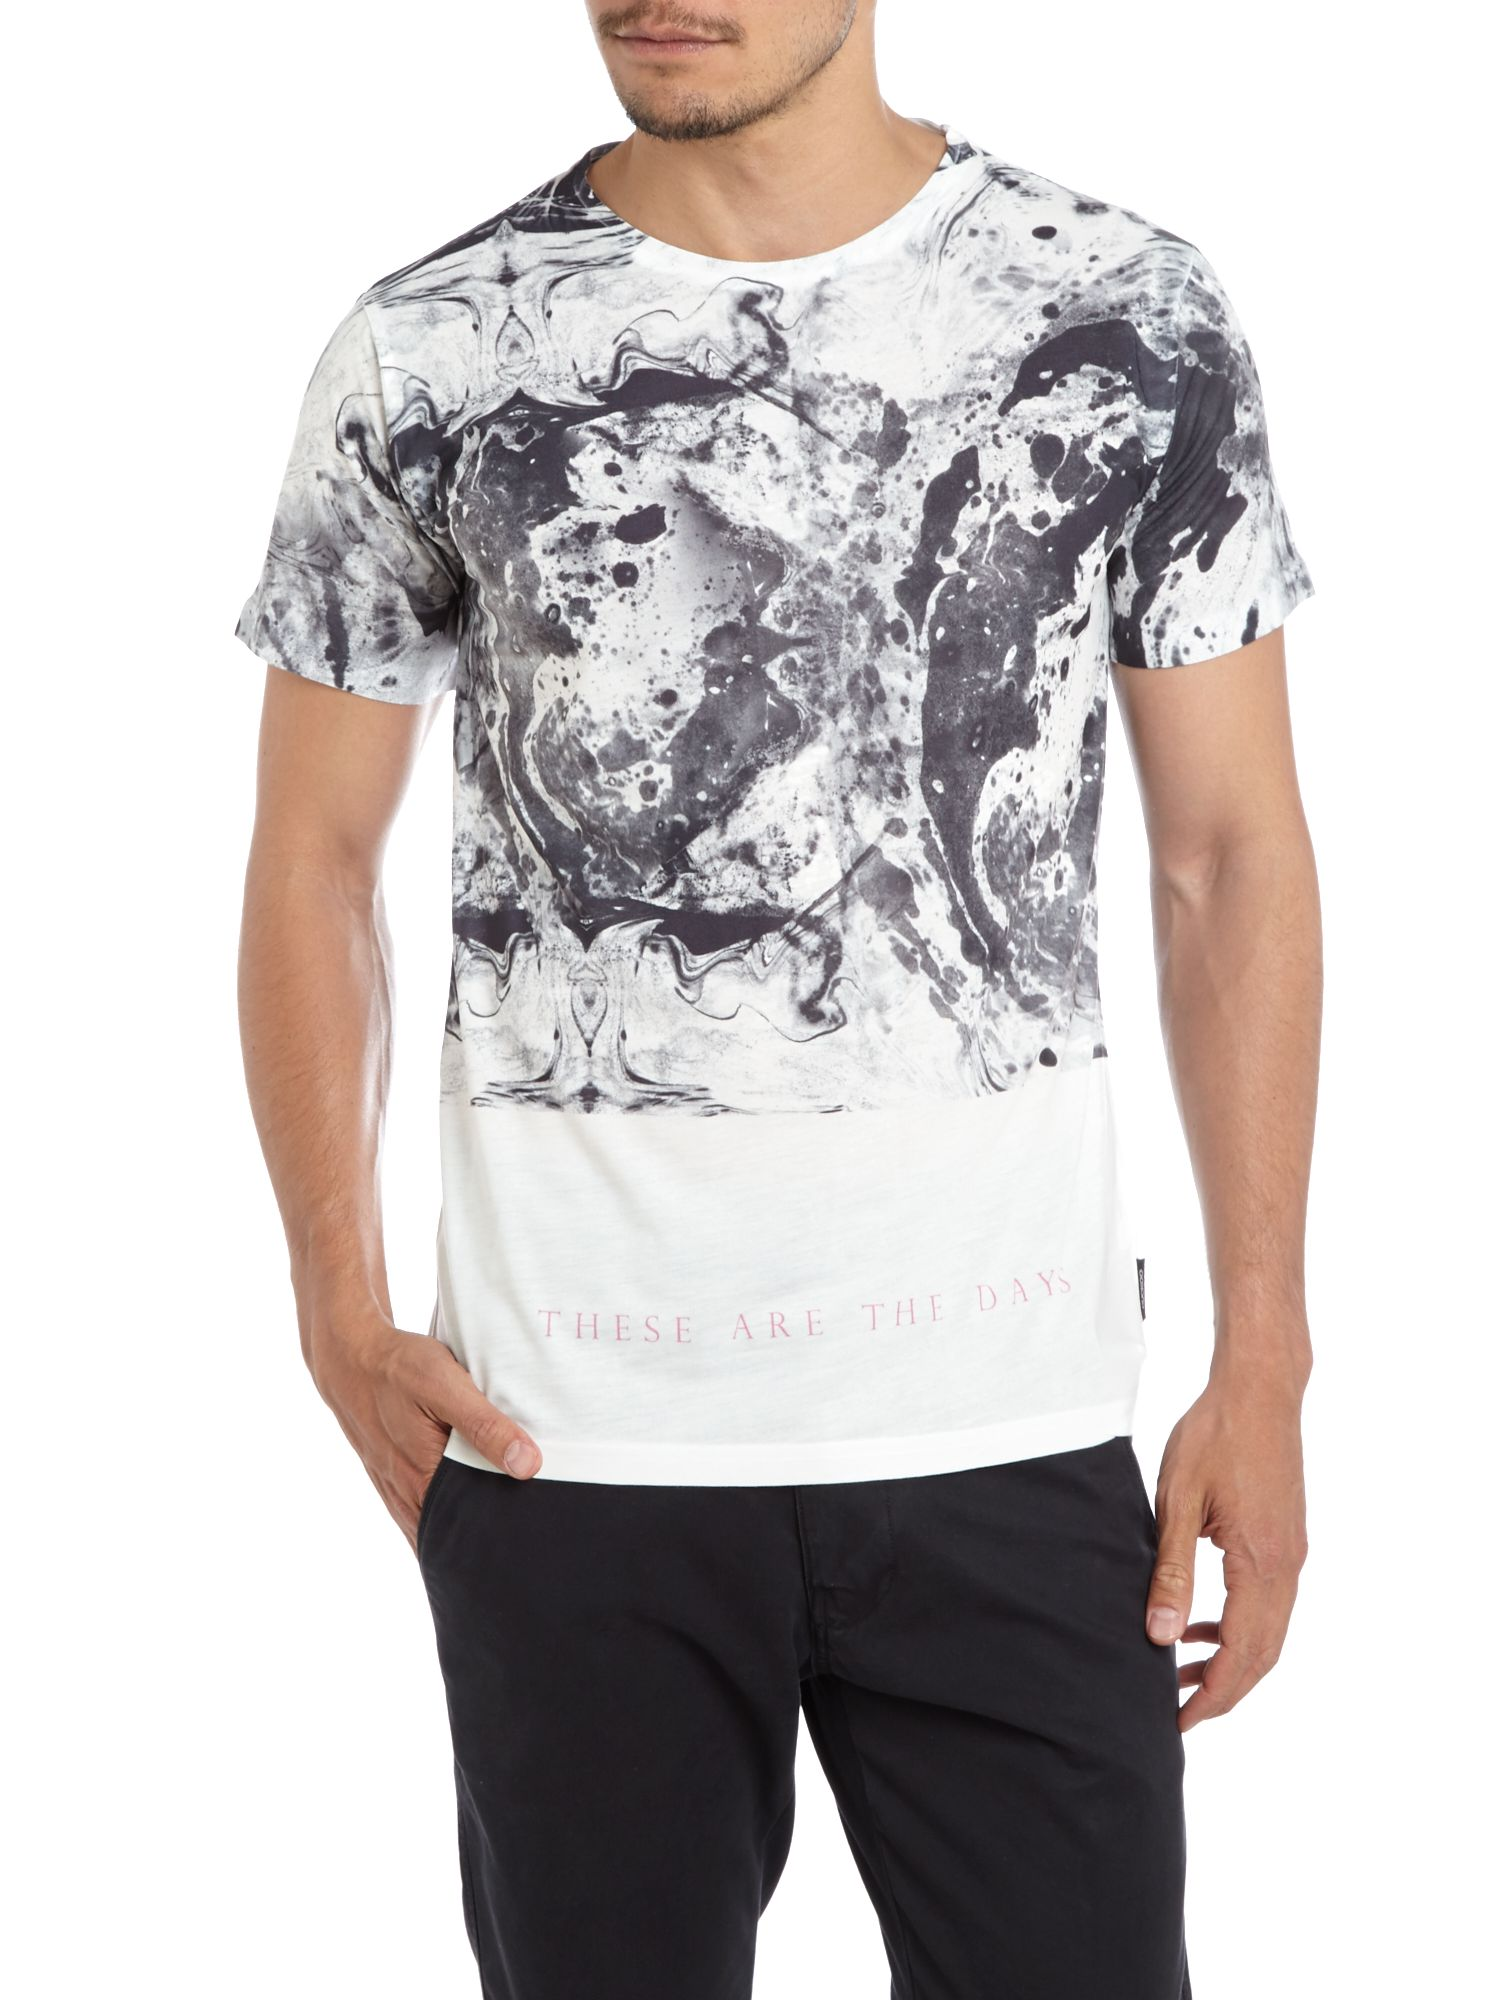 Oil spill printed t-shirt